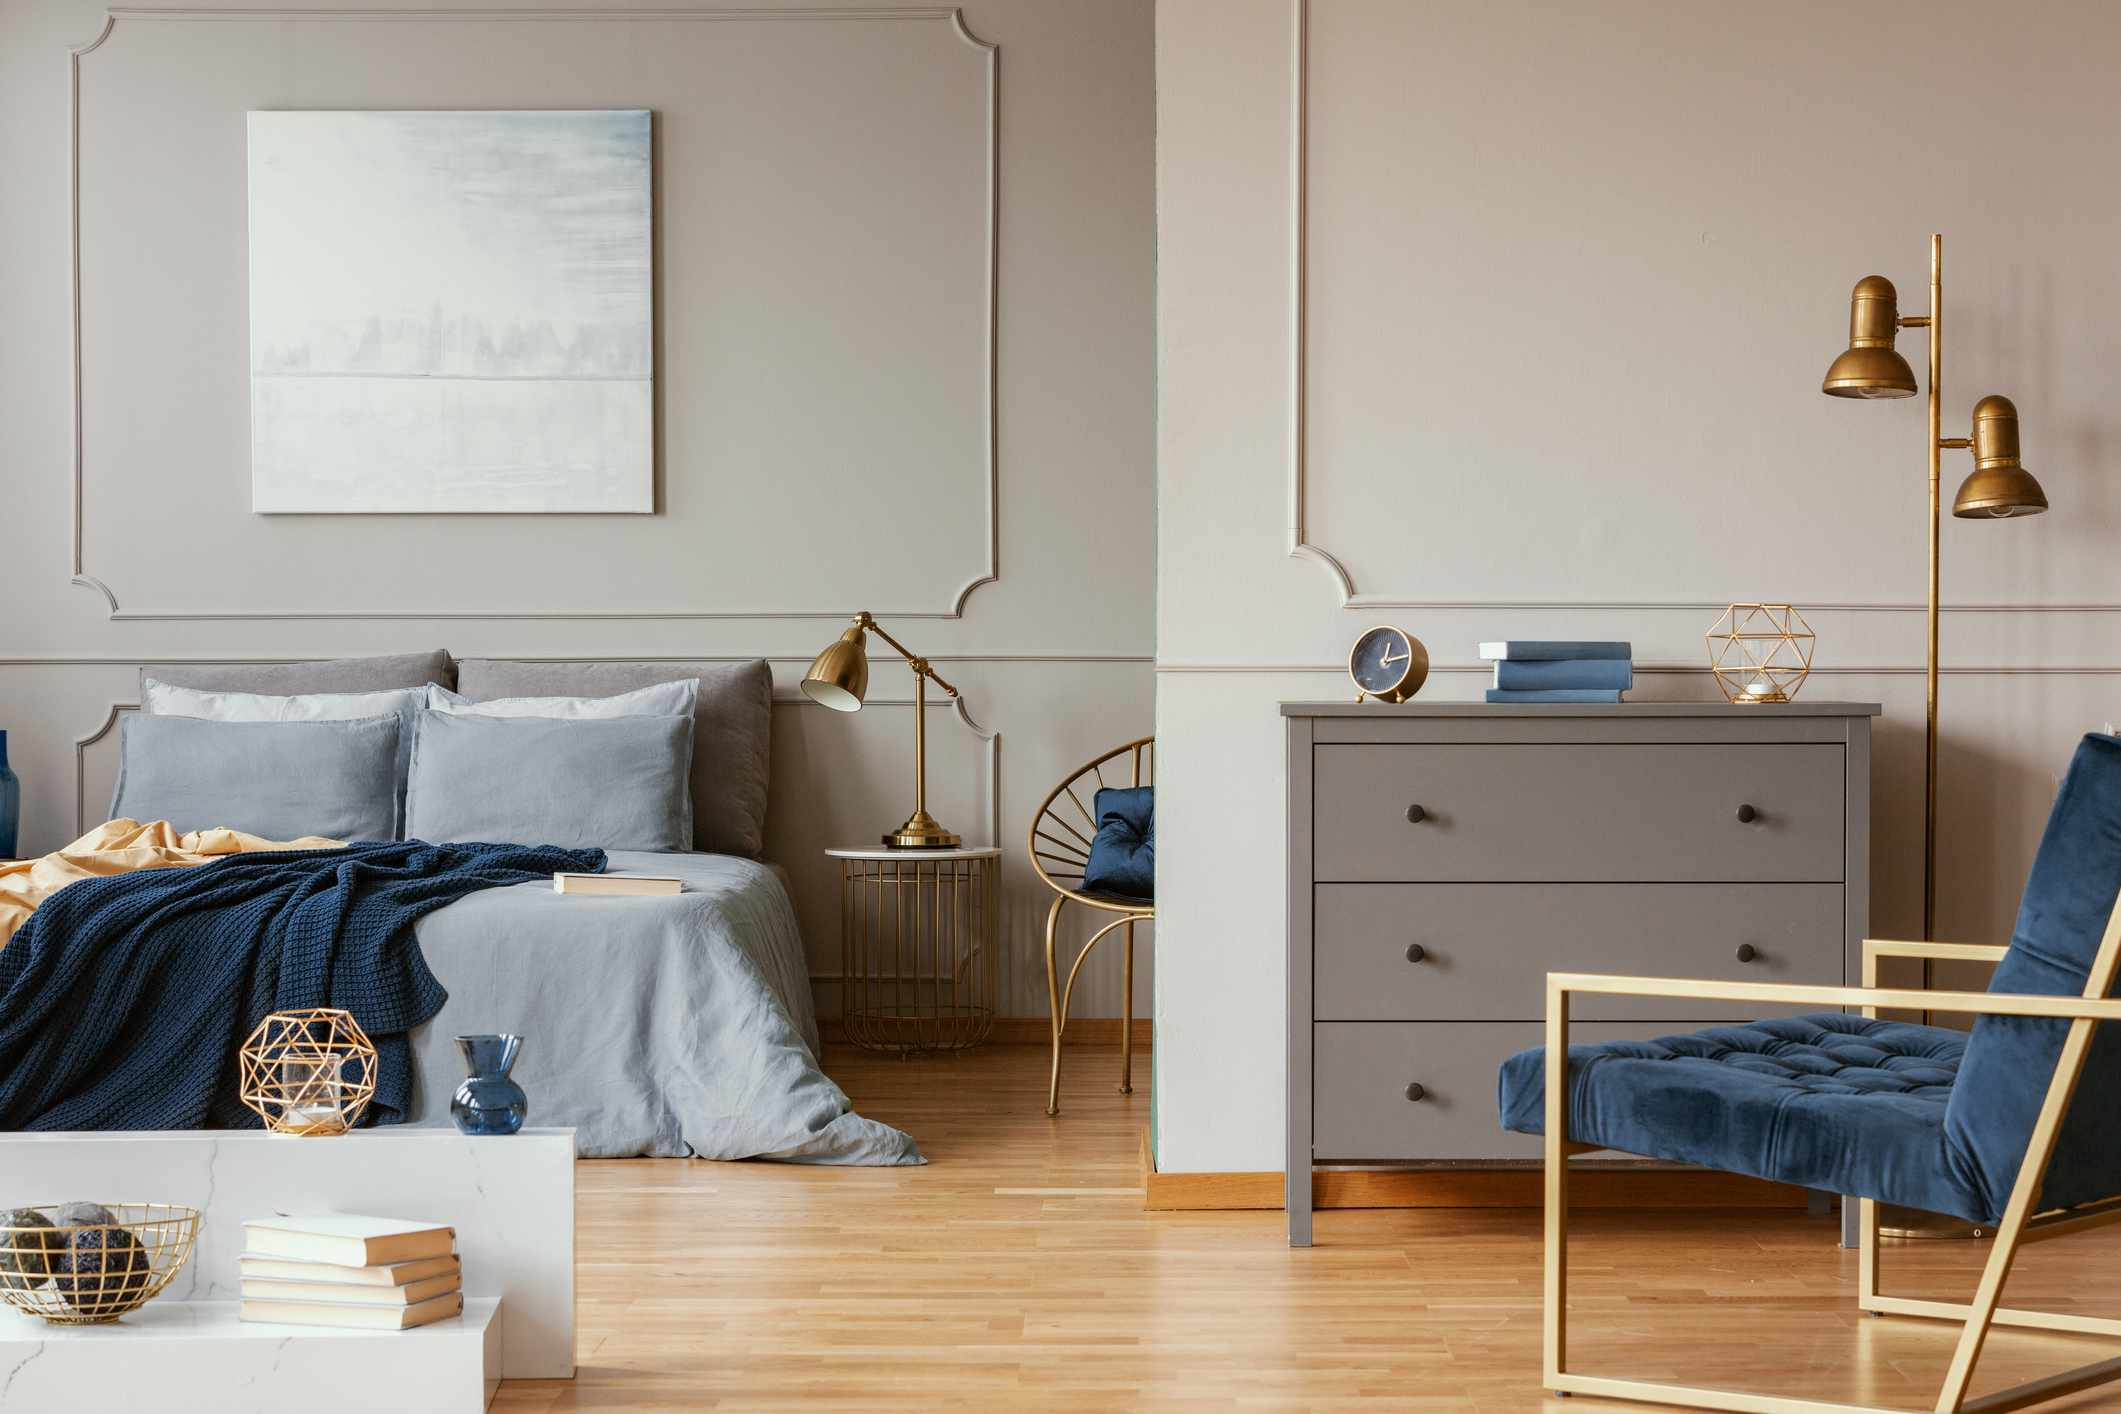 Pastel blue abstract painting above king size bed in elegant bedroom with gold accents